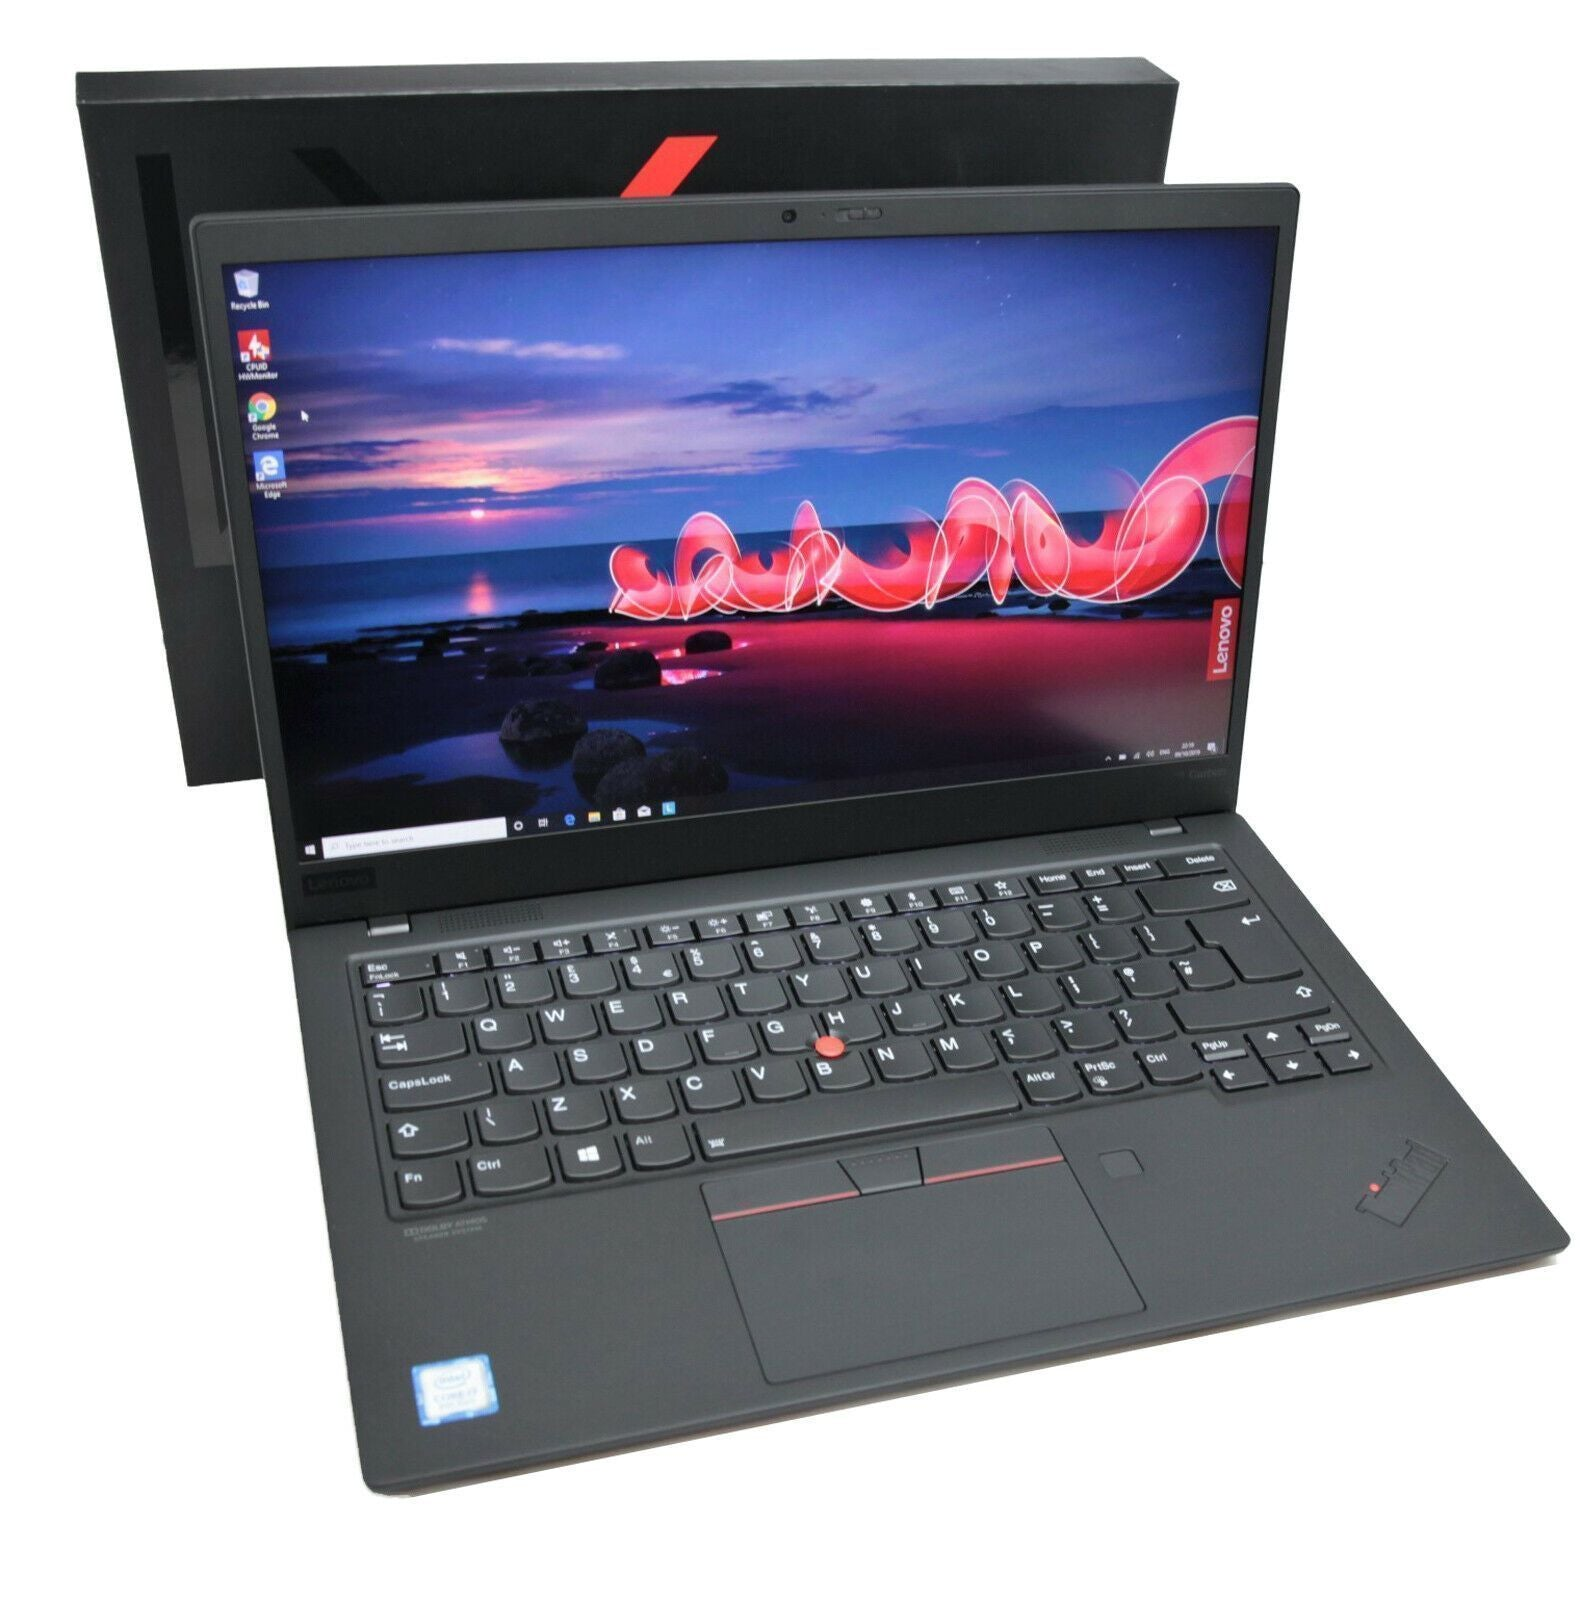 Lenovo Thinkpad X1 Carbon 7th Gen (2019): Core i7-8656U, 256GB, 16GB RAM, Warranty, VAT - CruiseTech